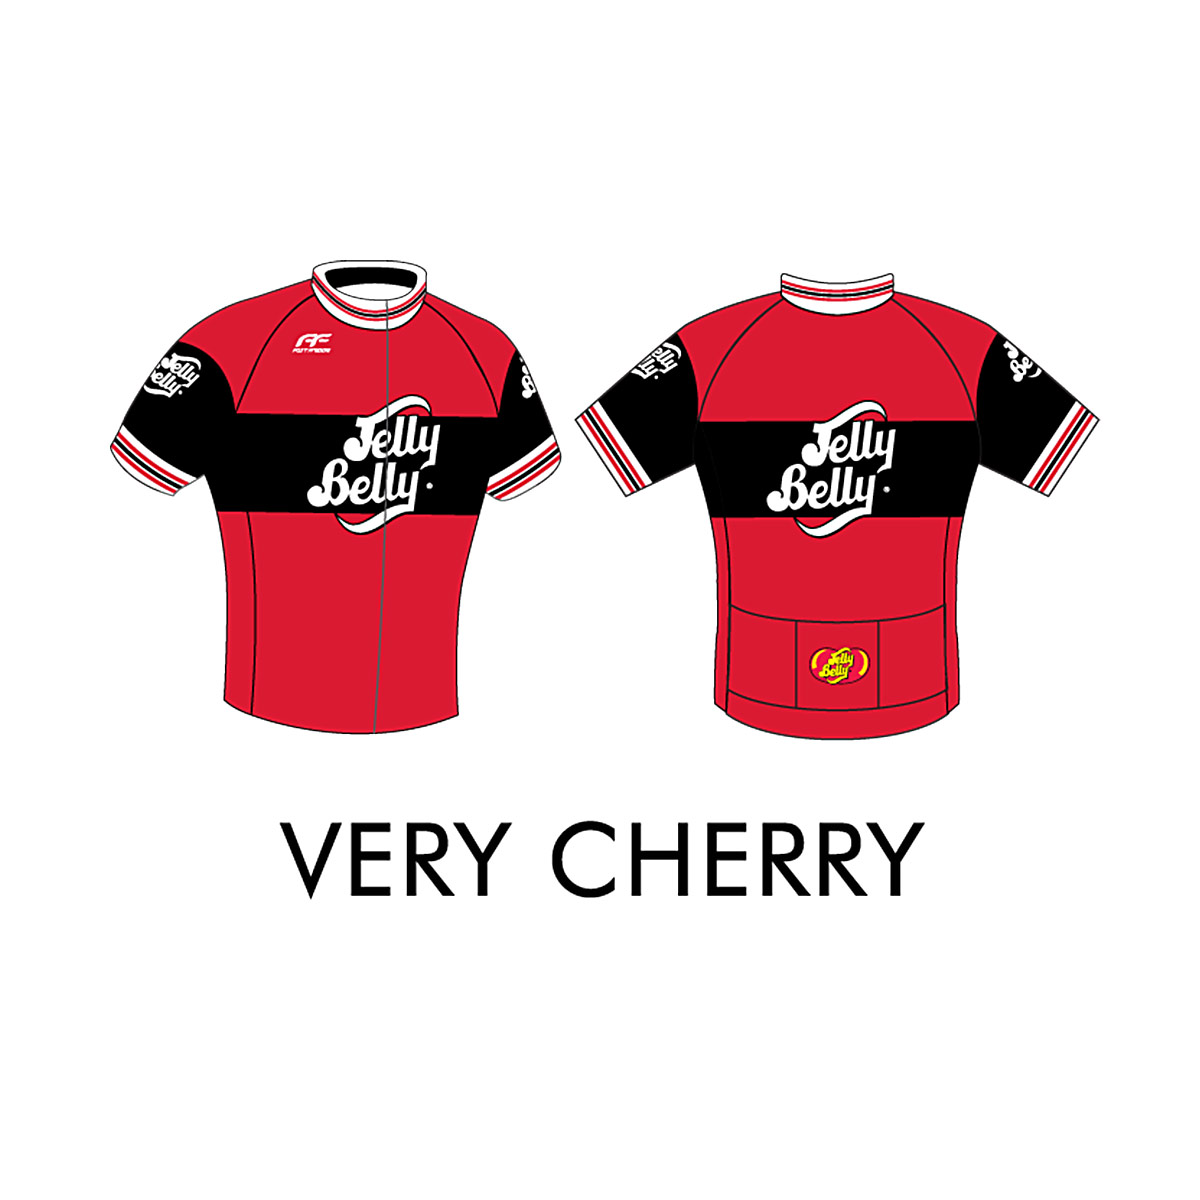 Jelly Belly Very Cherry Retro Cycling Jersey - Adult - Small